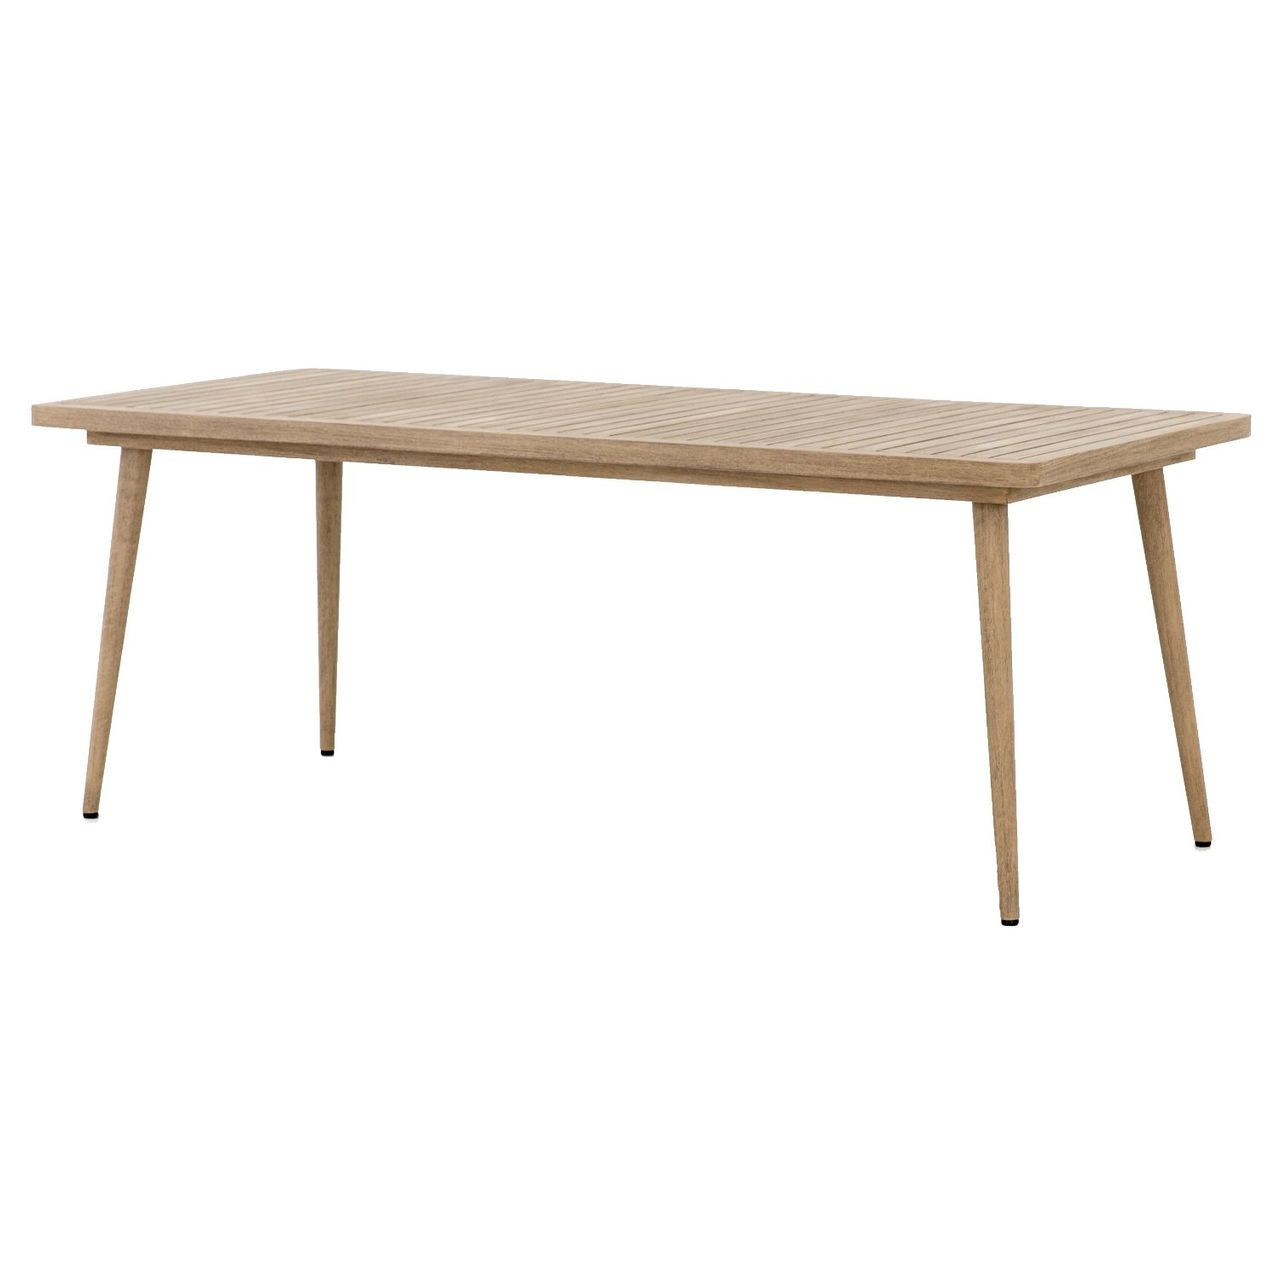 Hansen Natural Teak Wood Tapered Outdoor Dining Table 79 Zin Home